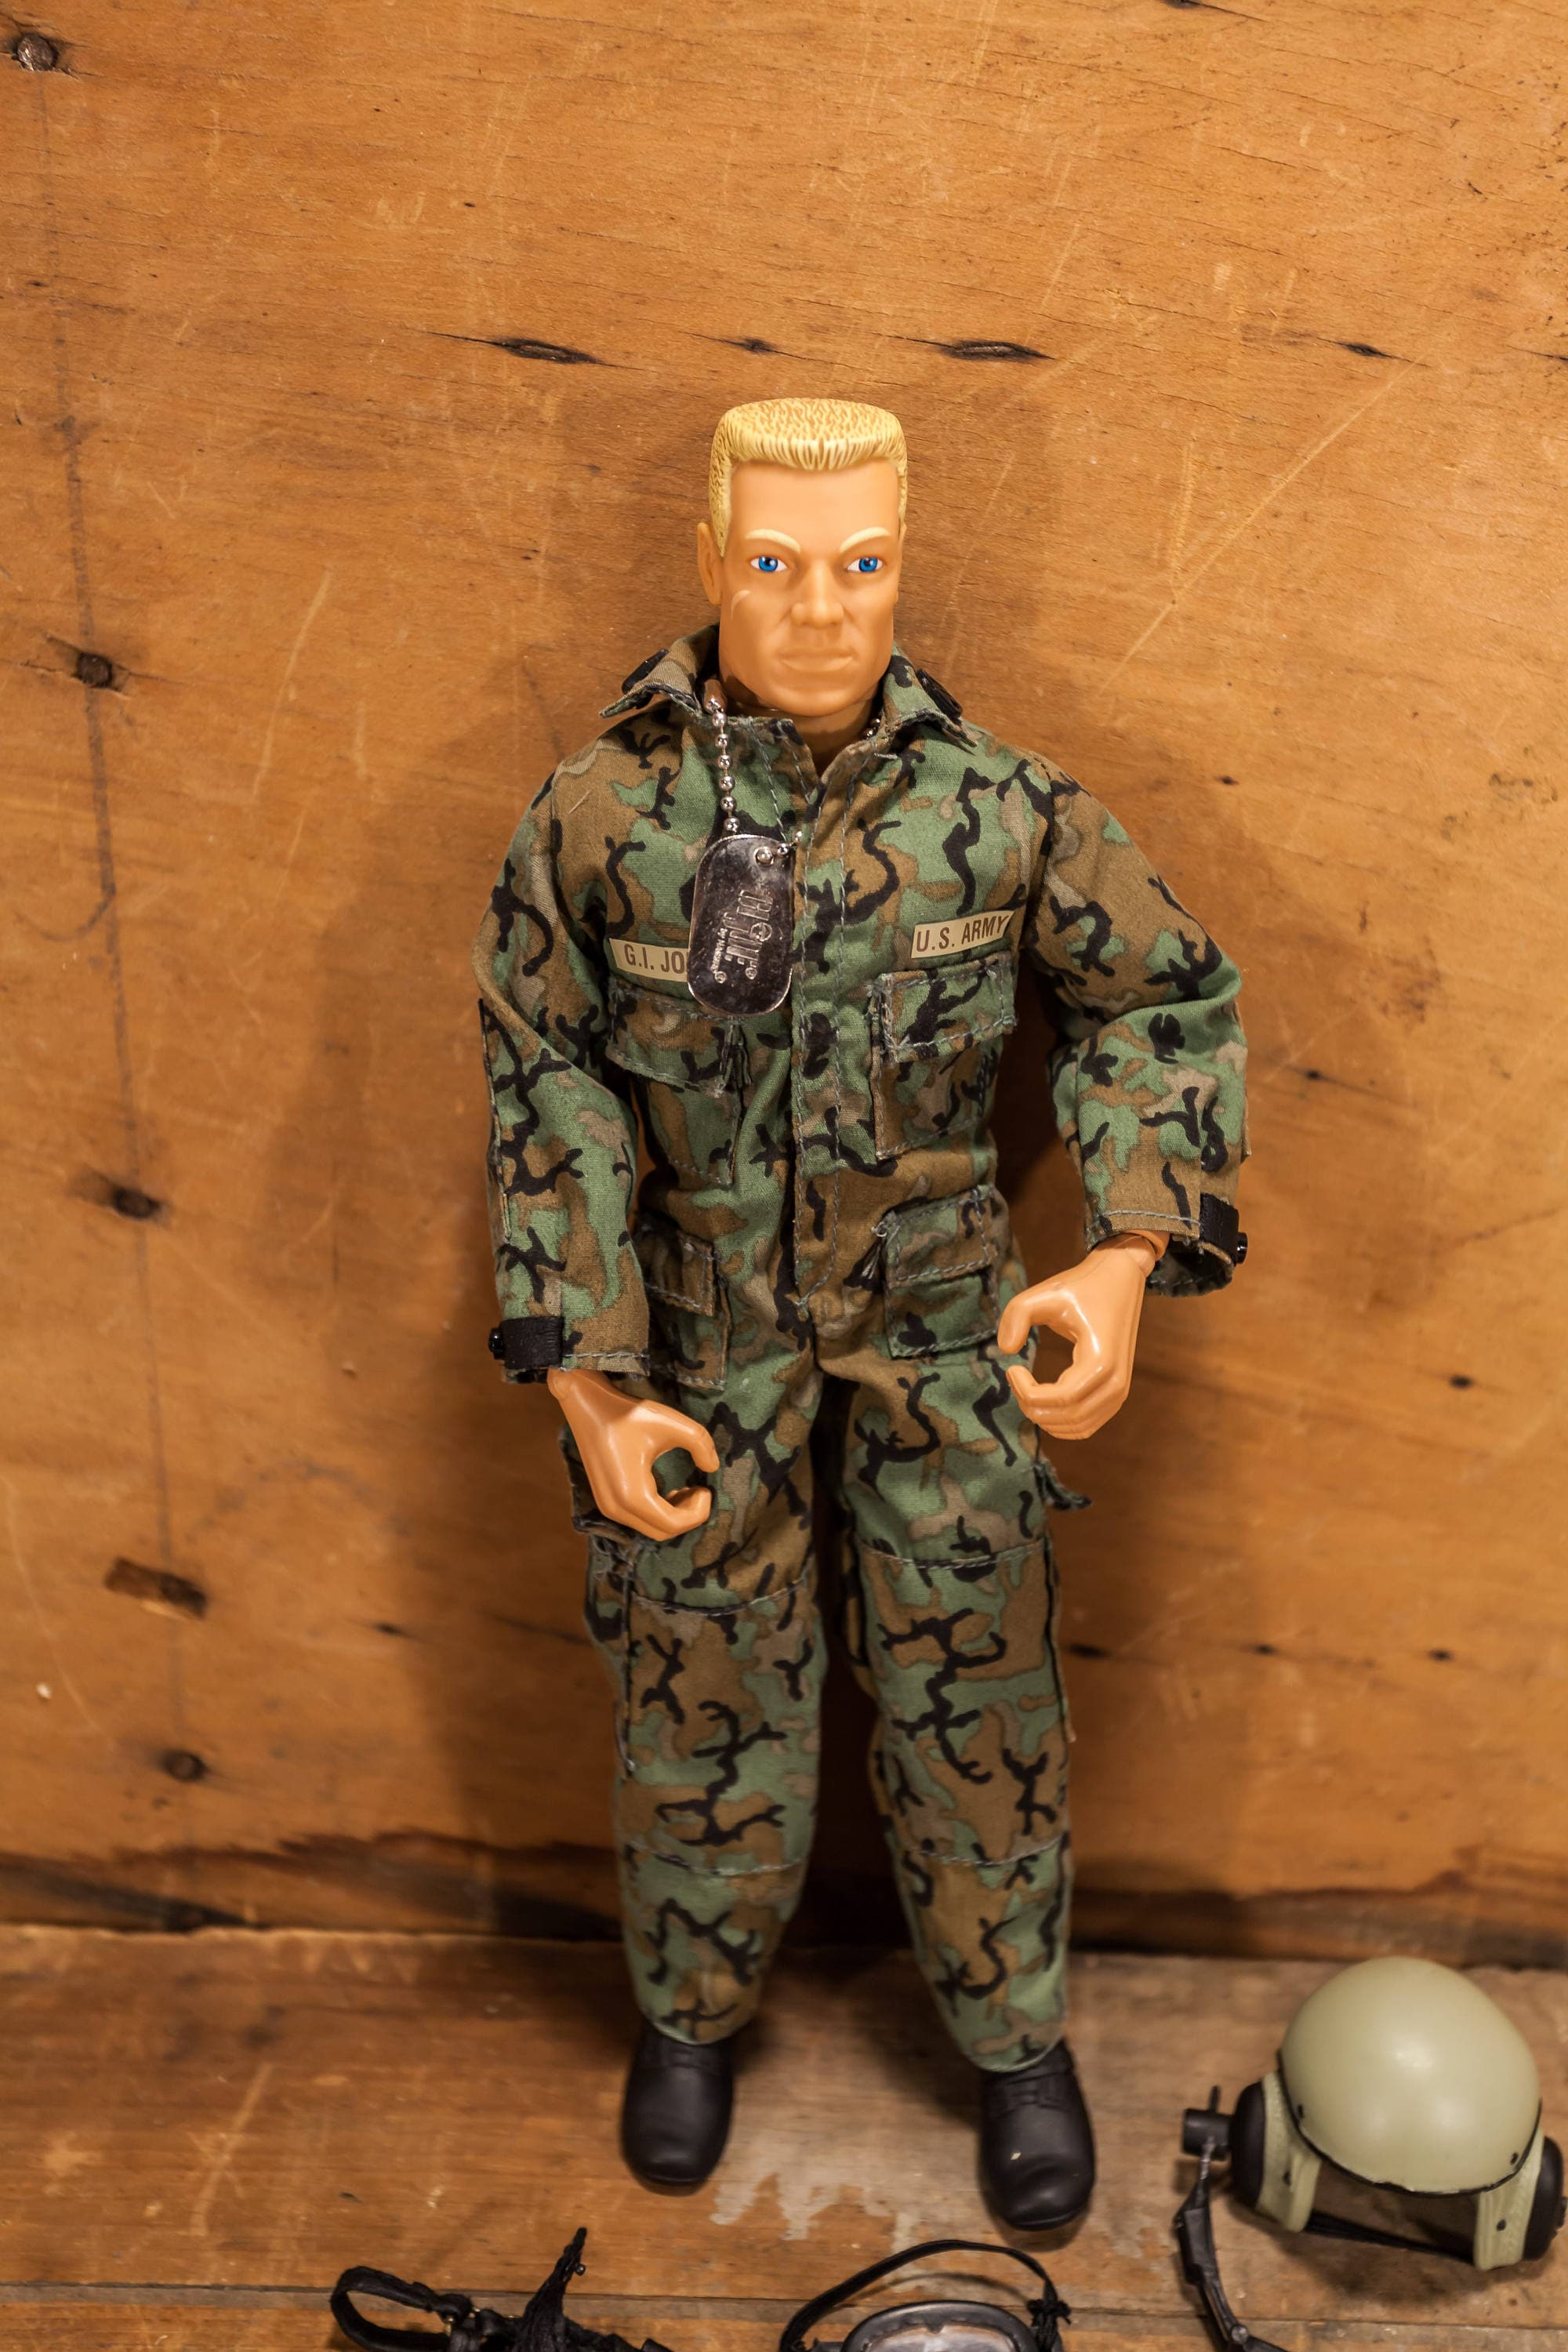 Doll Toys R Us Vintage 1996 Gi Joe Hasbro Us Army Tank Commander Action